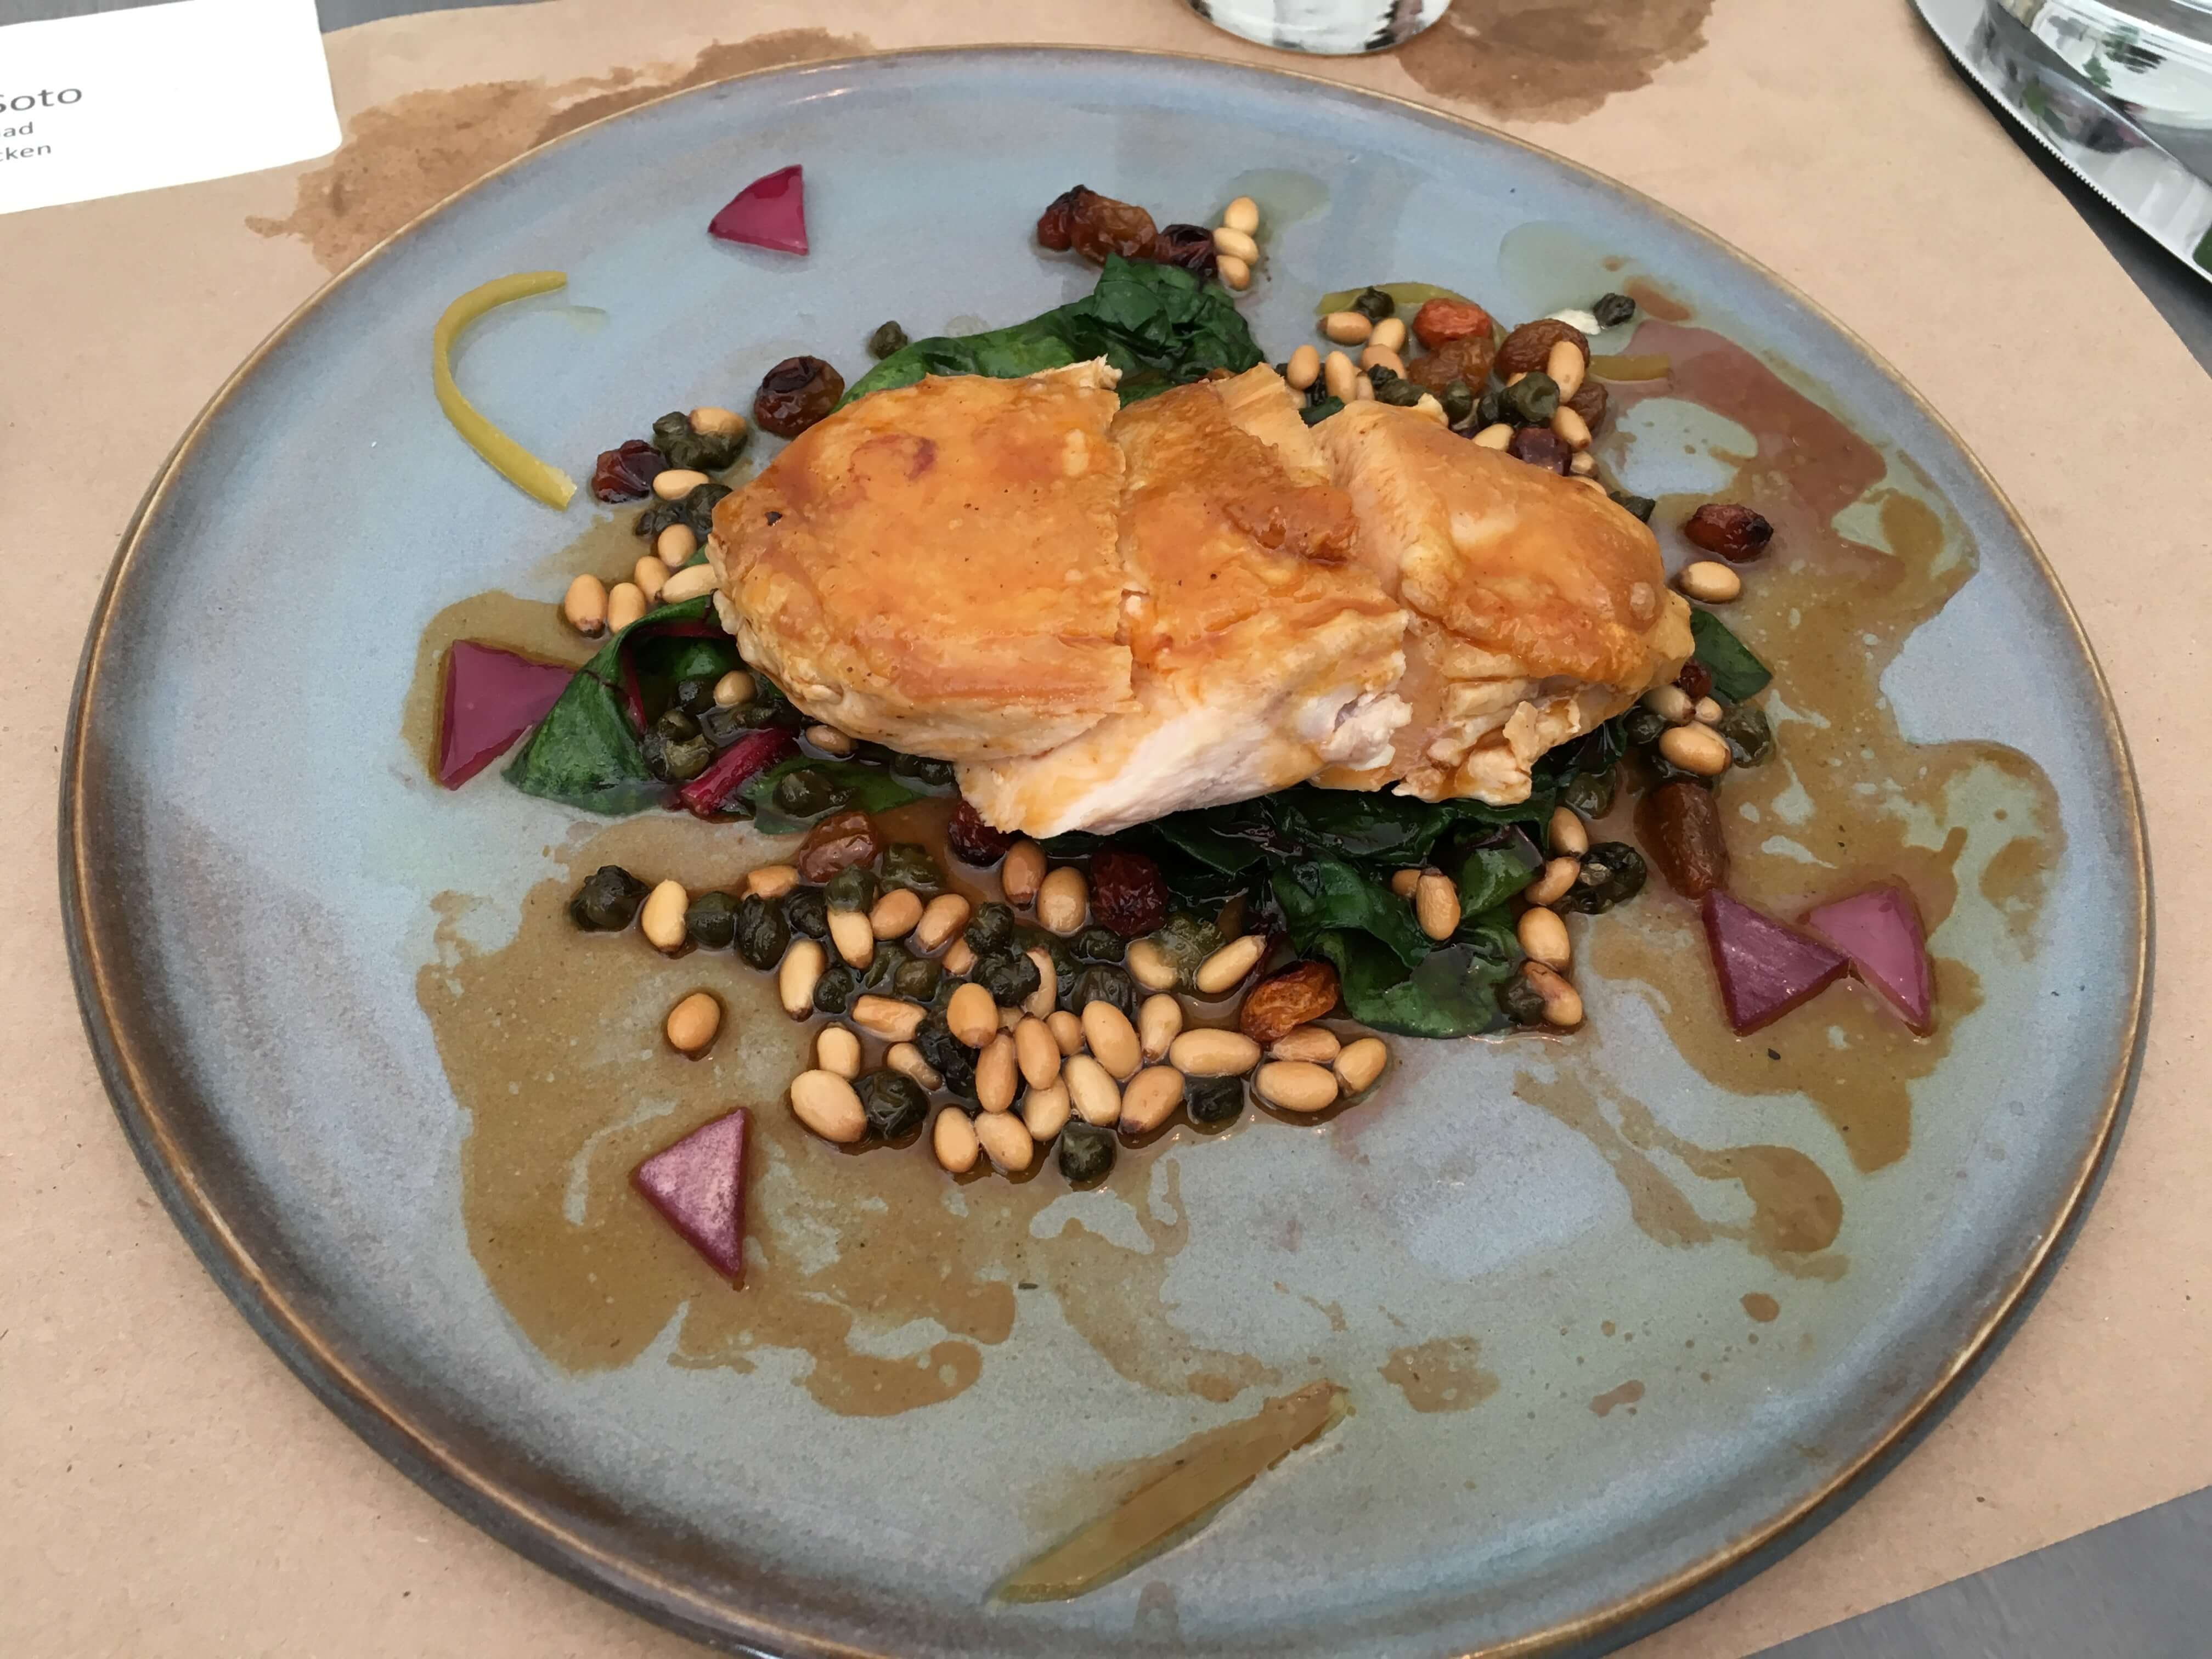 Volaille Rotie. Mary's chicken breast, swiss chard, potato, capers, raisin, lemon confit, pine nuts.